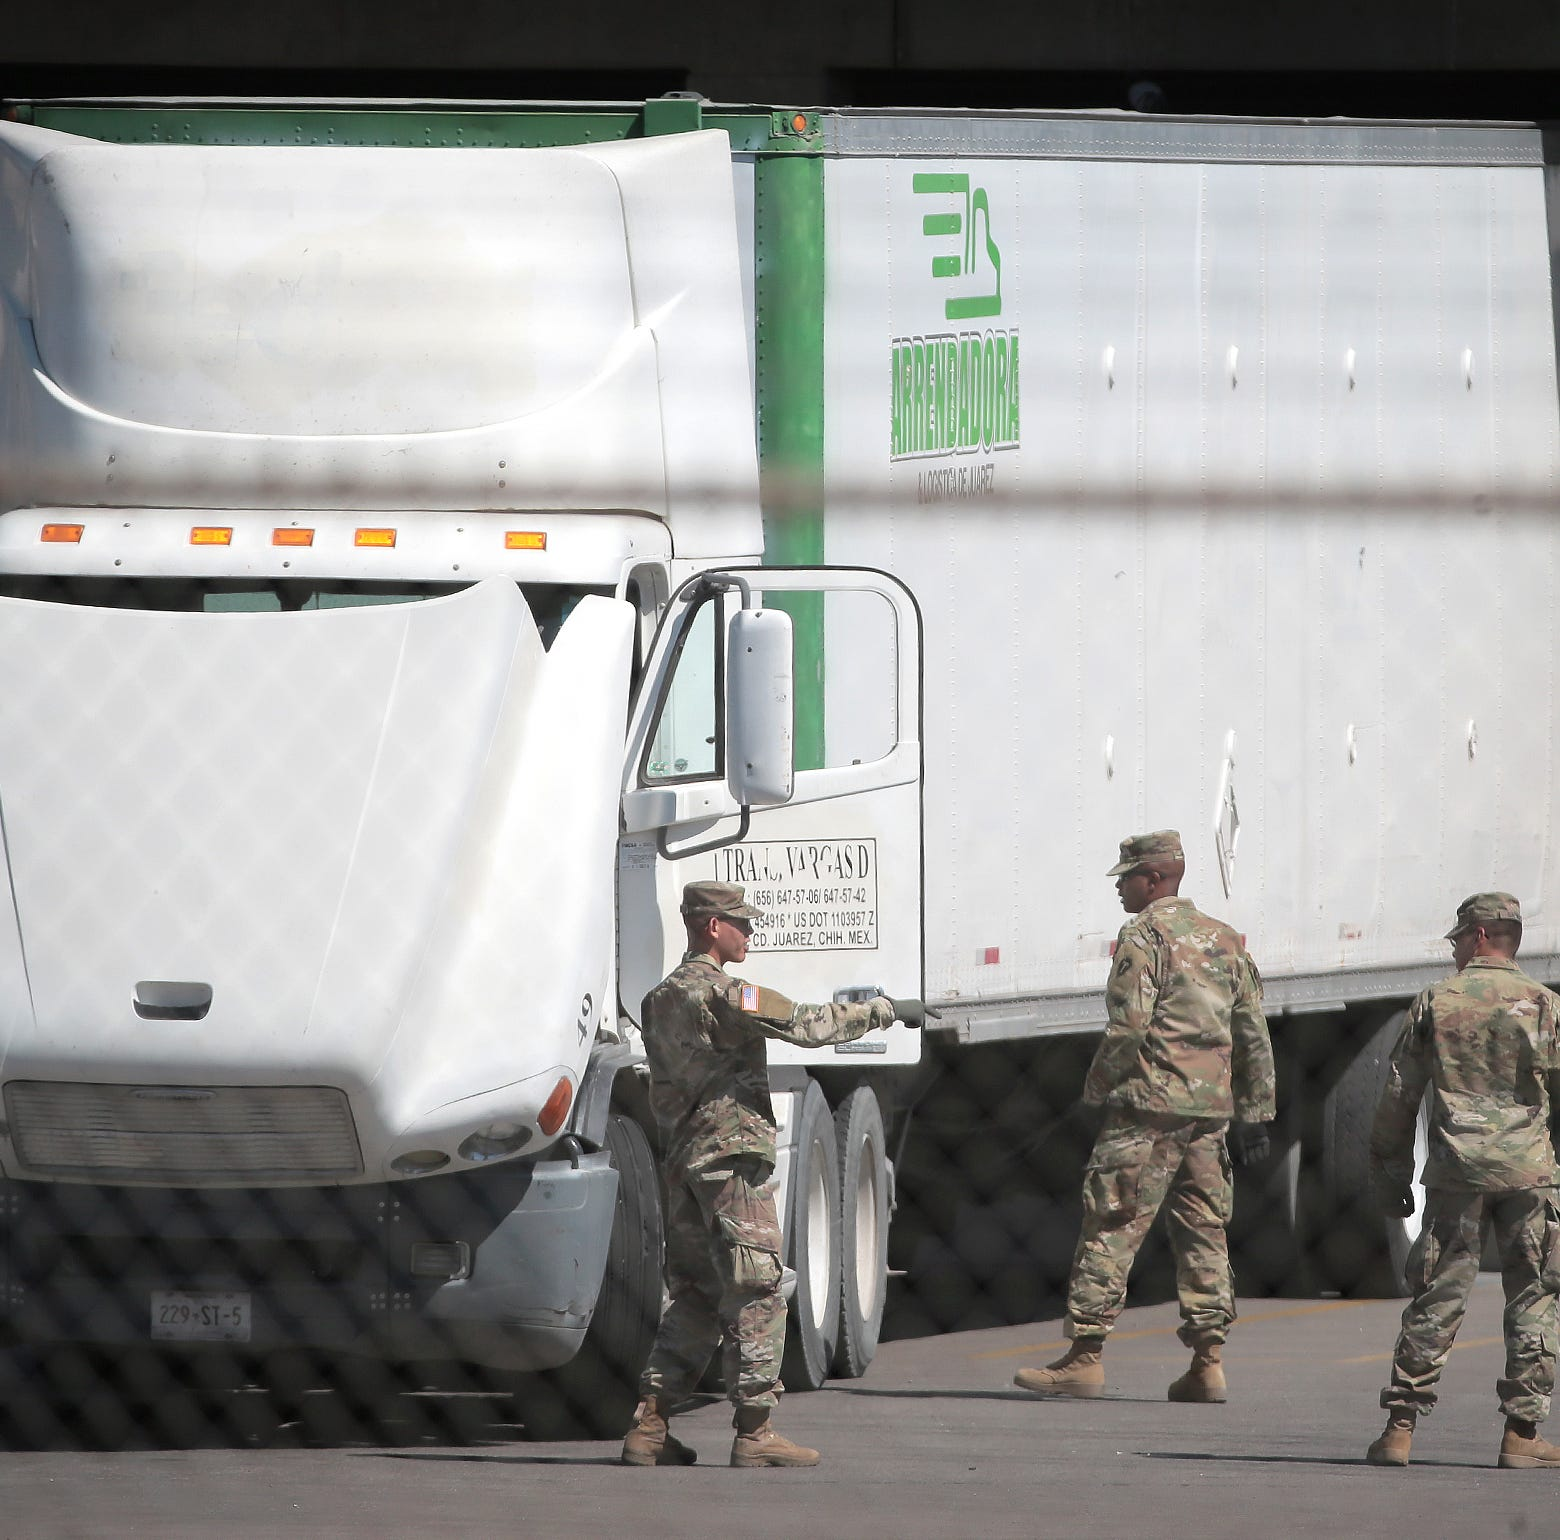 National Guard troops set up concertina wire at ports of entry in El Paso area